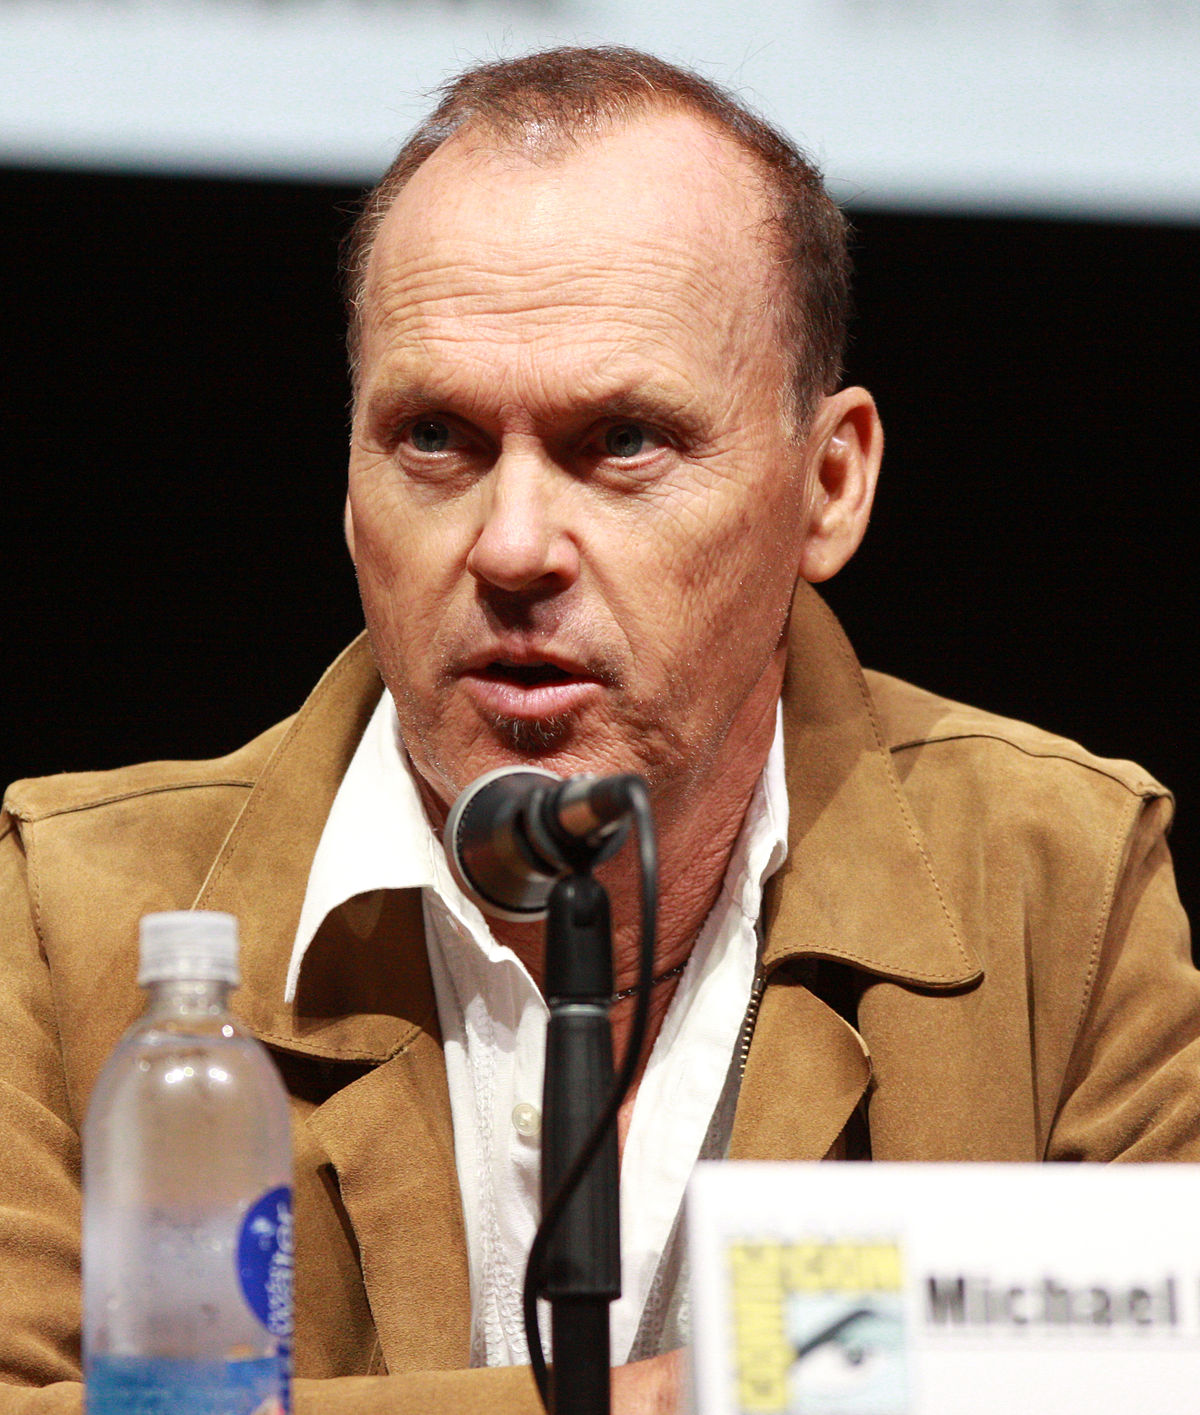 michael keaton heightmichael keaton height, michael keaton instagram, michael keaton founder, michael keaton my life, michael keaton bruce wayne, michael keaton wife, michael keaton imdb, michael keaton 1989, michael keaton facebook, michael keaton american assassin, michael keaton mcdonald's, michael keaton need for speed, michael keaton vs kevin costner, michael keaton twitter, michael keaton imdb bio, michael keaton gif, michael keaton saying i'm batman, michael keaton 1995, michael keaton cars, michael keaton batman